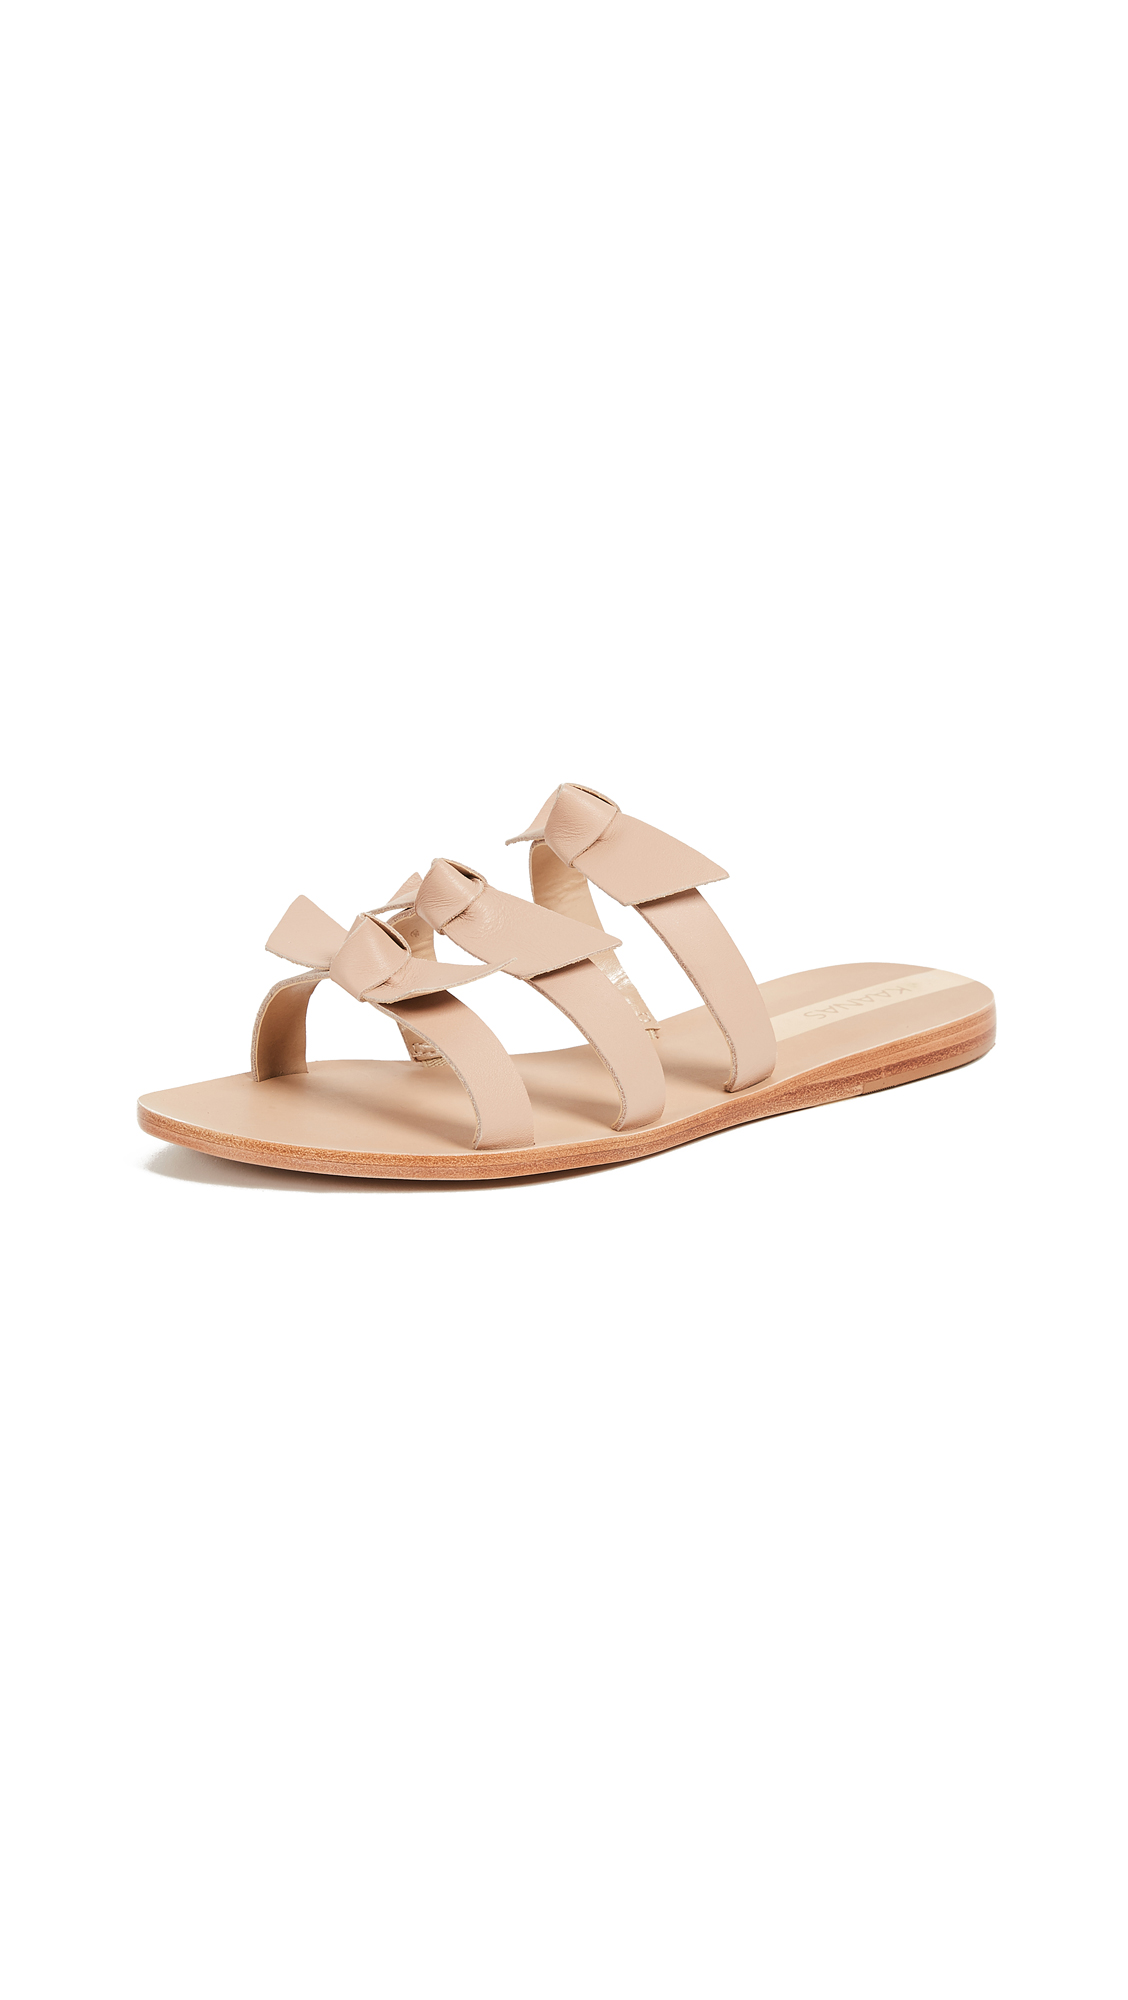 KAANAS Recife Bow Sandals - Nude